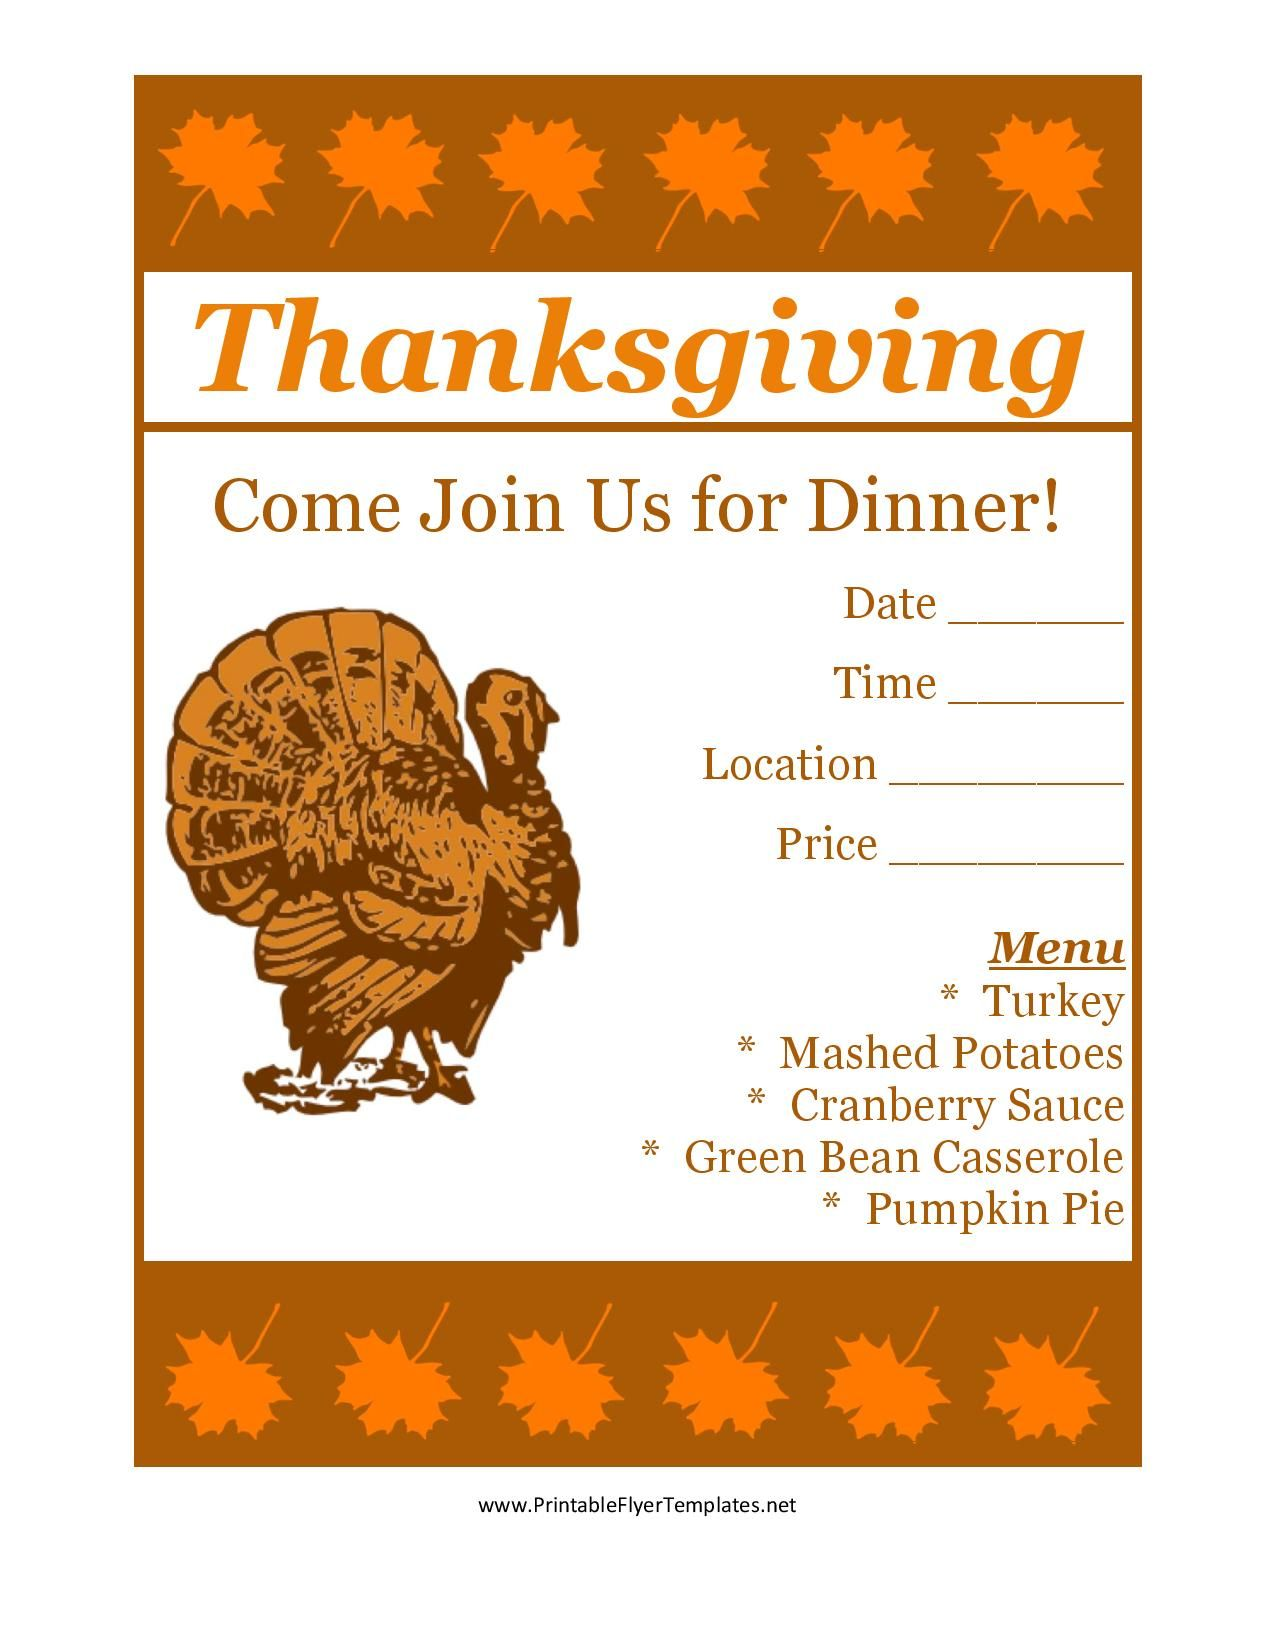 7 best images of free printable thanksgiving flyers thanksgiving party flyer templates thanksgiving potluck flyer template free and thanksgiving event